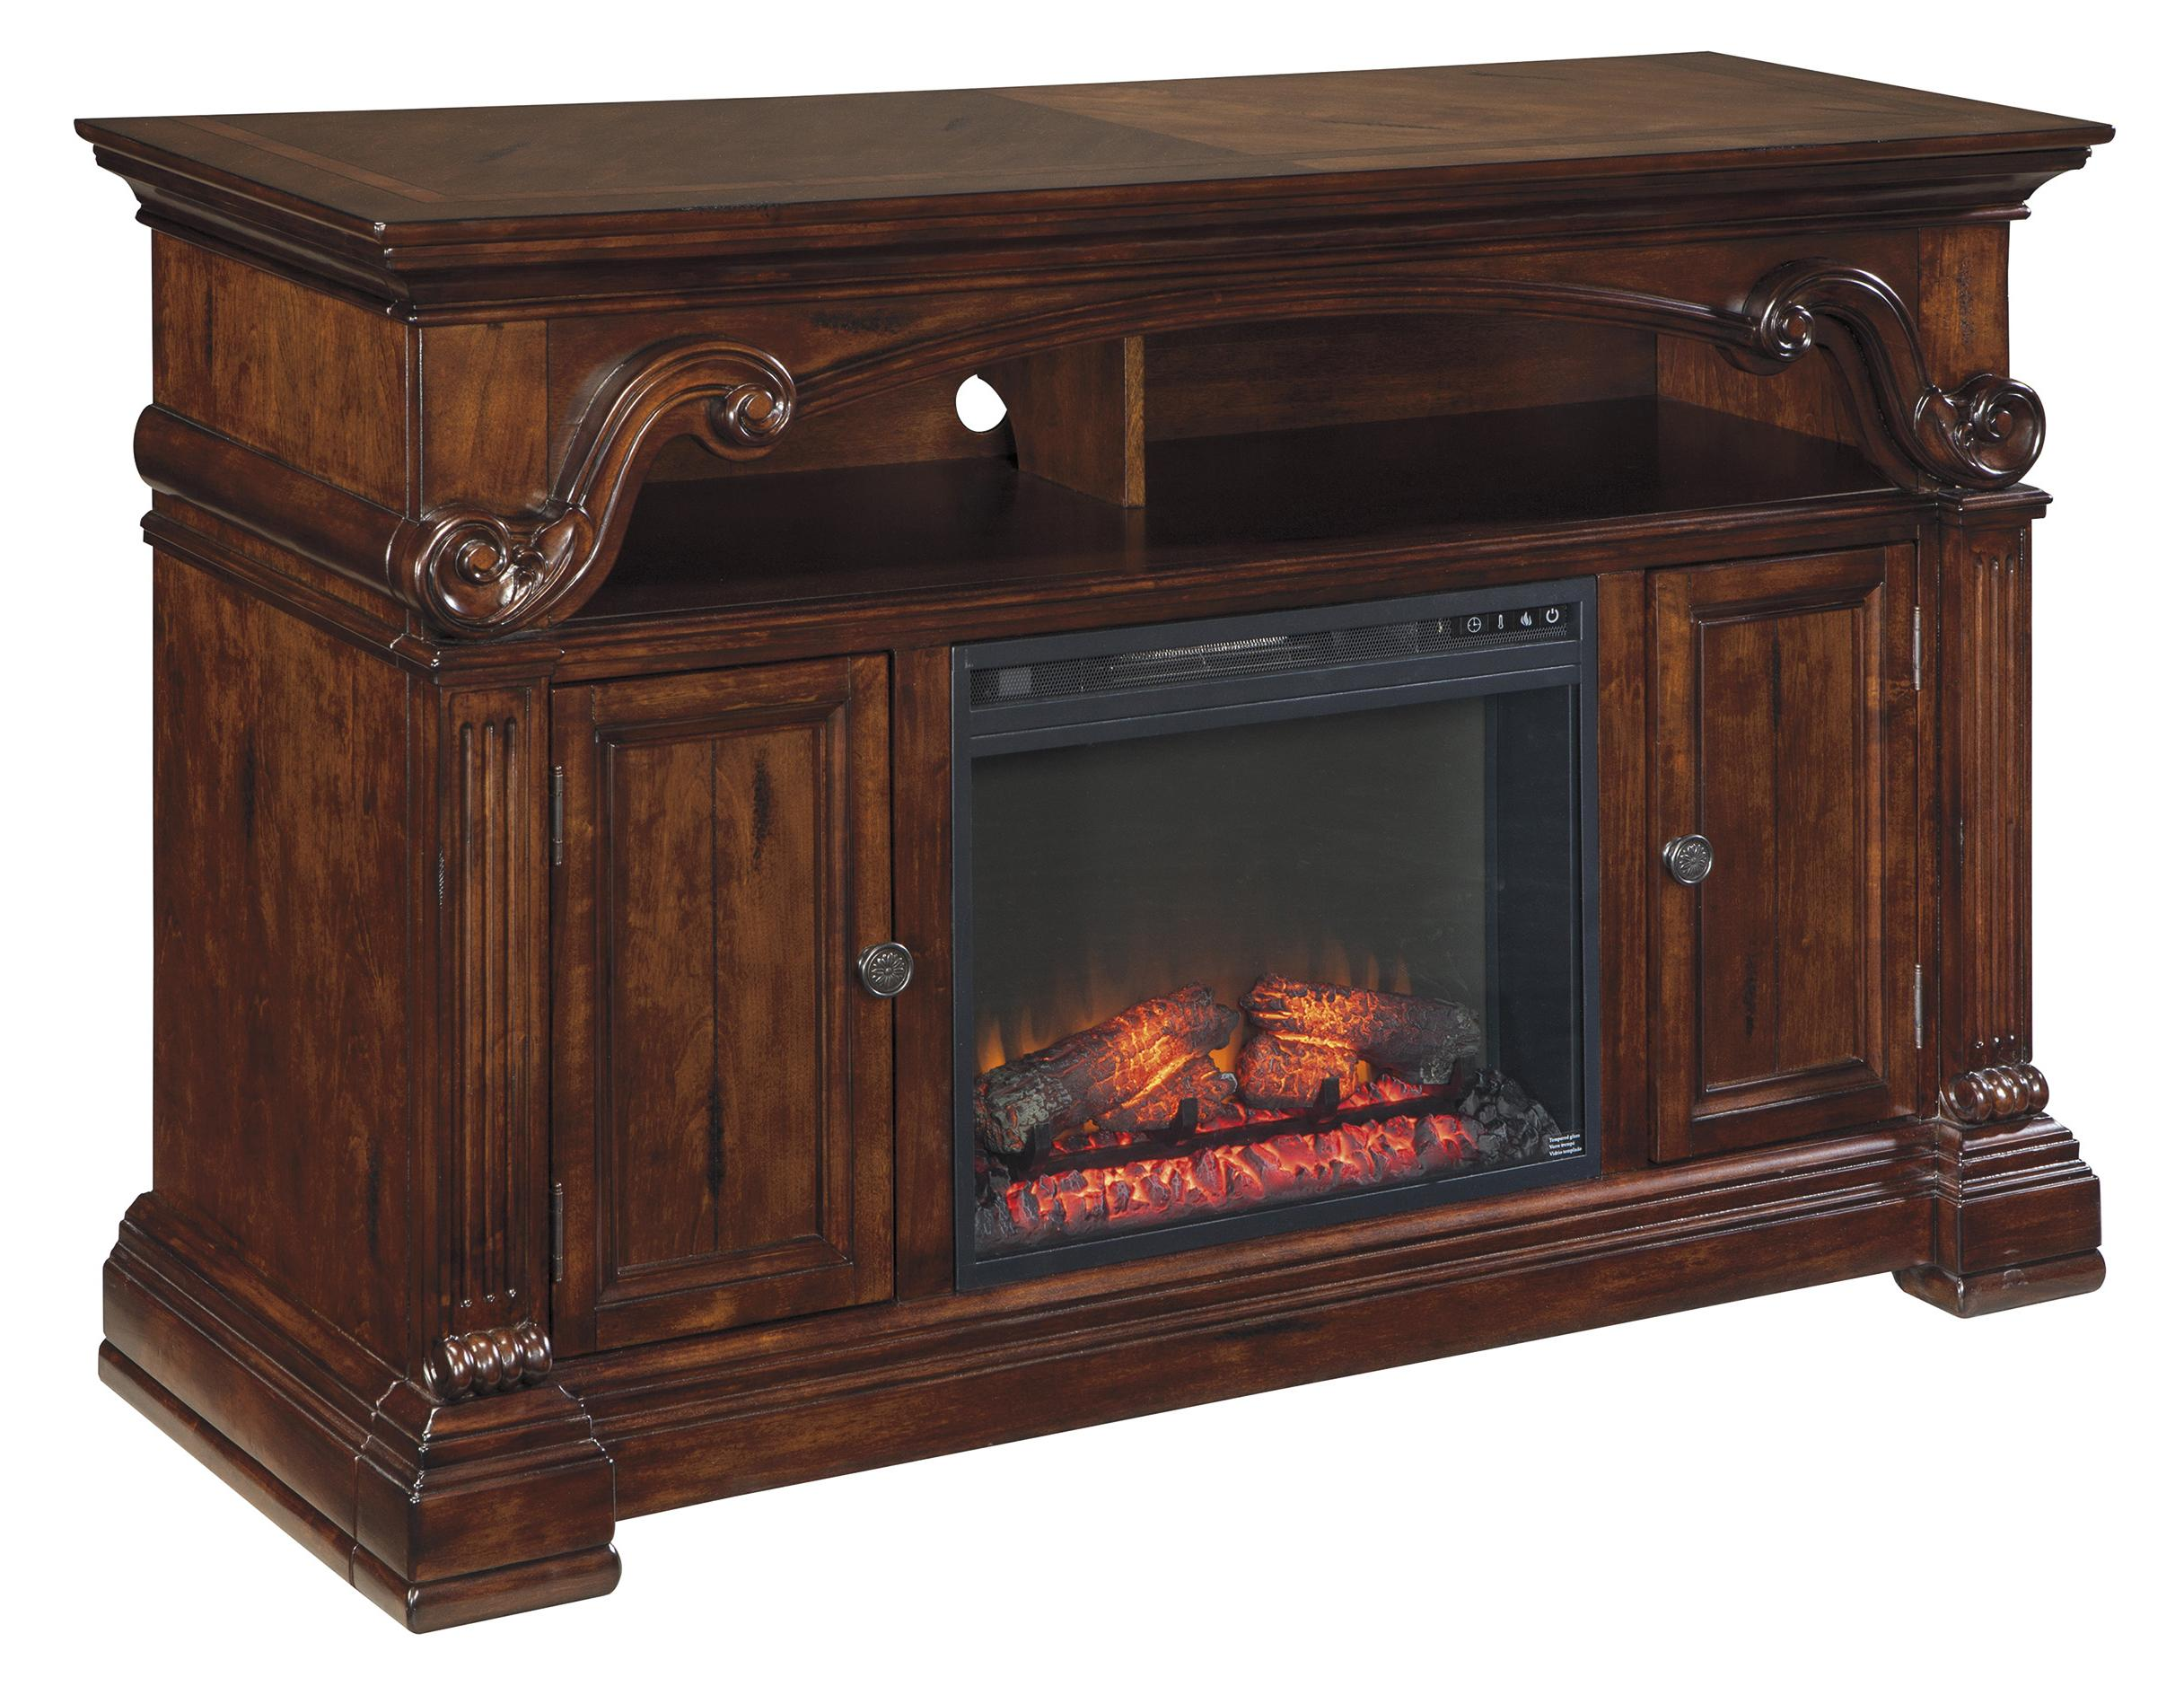 Signature Design by Ashley Alymere Large TV Stand with Fireplace Insert - Item Number: W669-68+W100-01